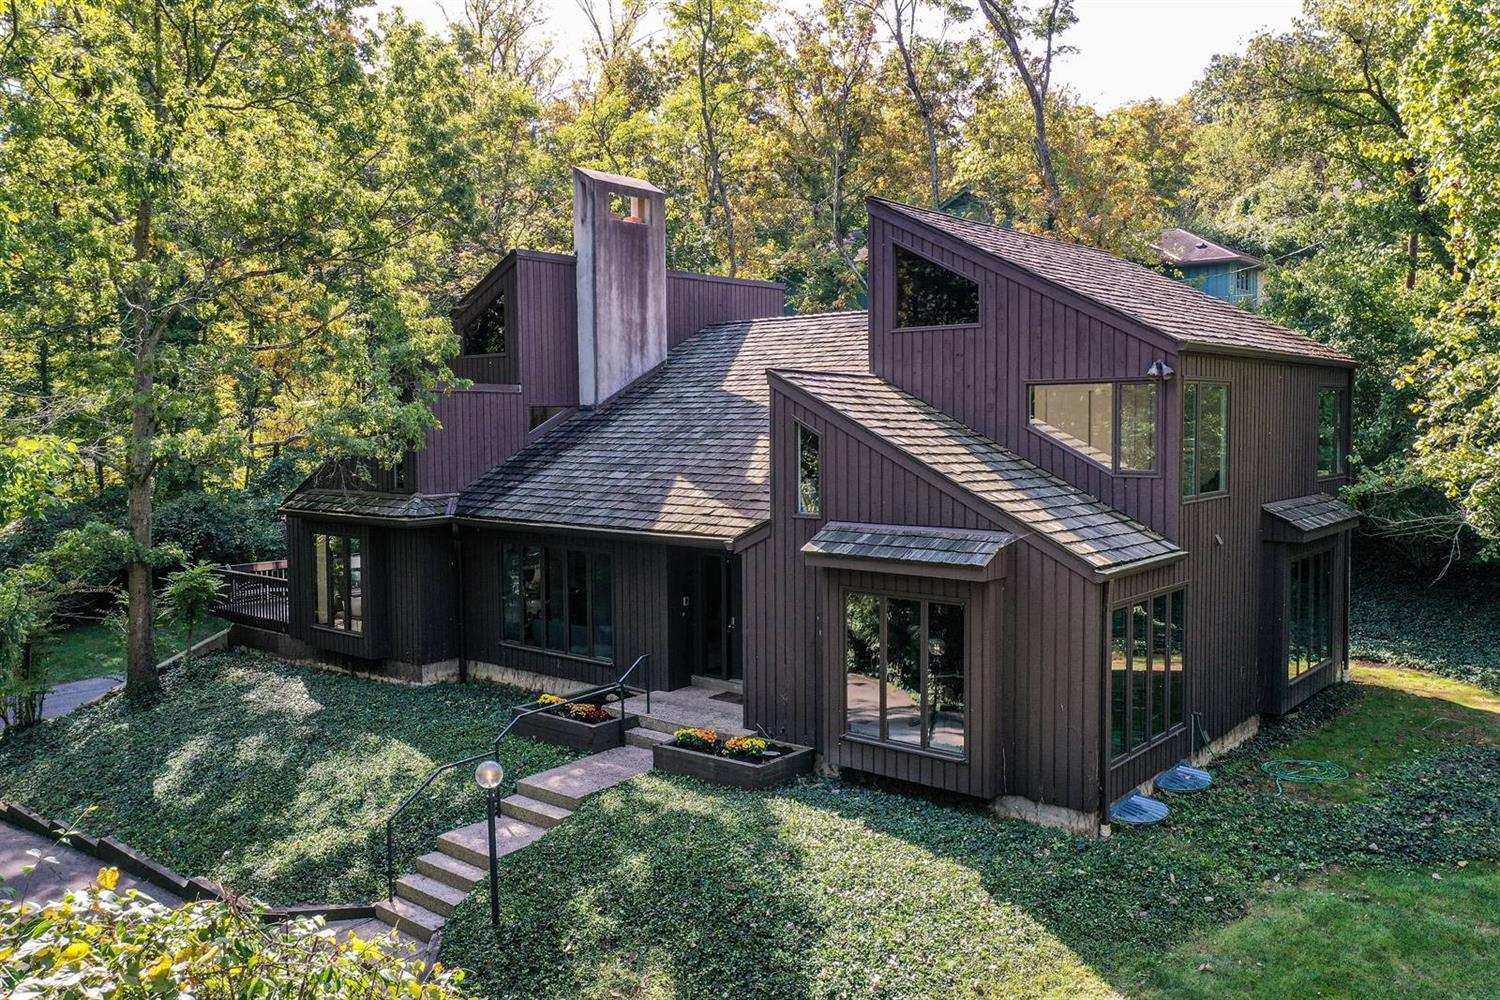 1280 Sweetwater Drive, Wyoming, Ohio 45215, 5 Bedrooms Bedrooms, 11 Rooms Rooms,3 BathroomsBathrooms,Single Family Residence,For Sale,Sweetwater,1717754